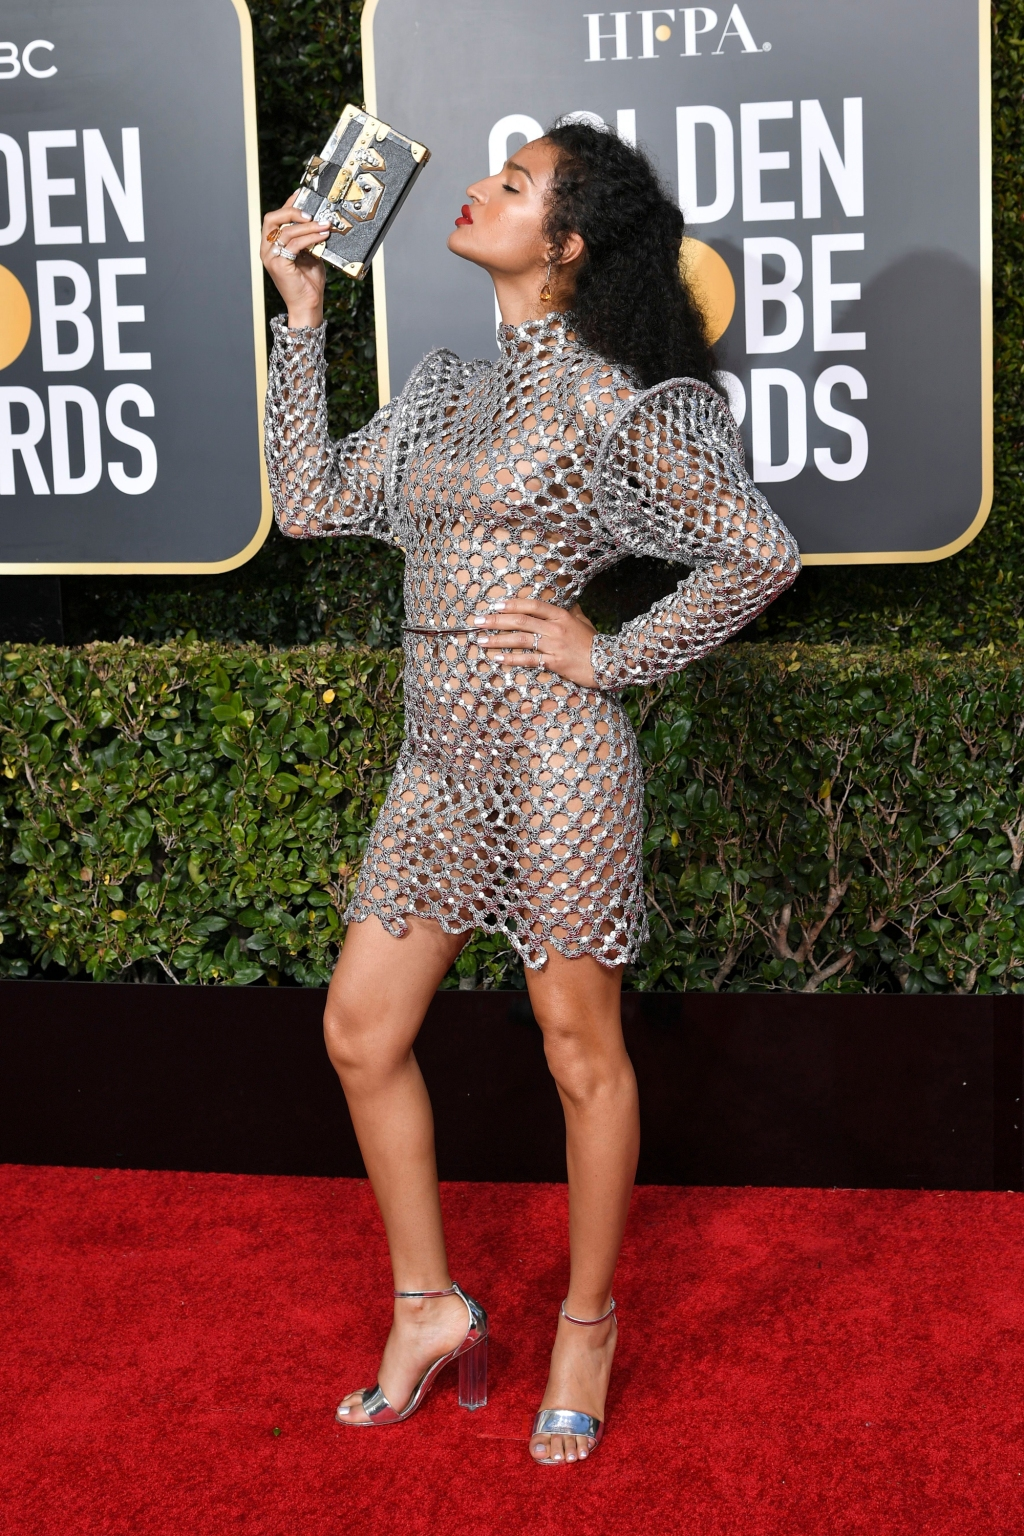 Indya Moore attends the 76th Annual Golden Globe Awards at The Beverly Hilton Hotel on January 6, 2019 in Beverly Hills, California.